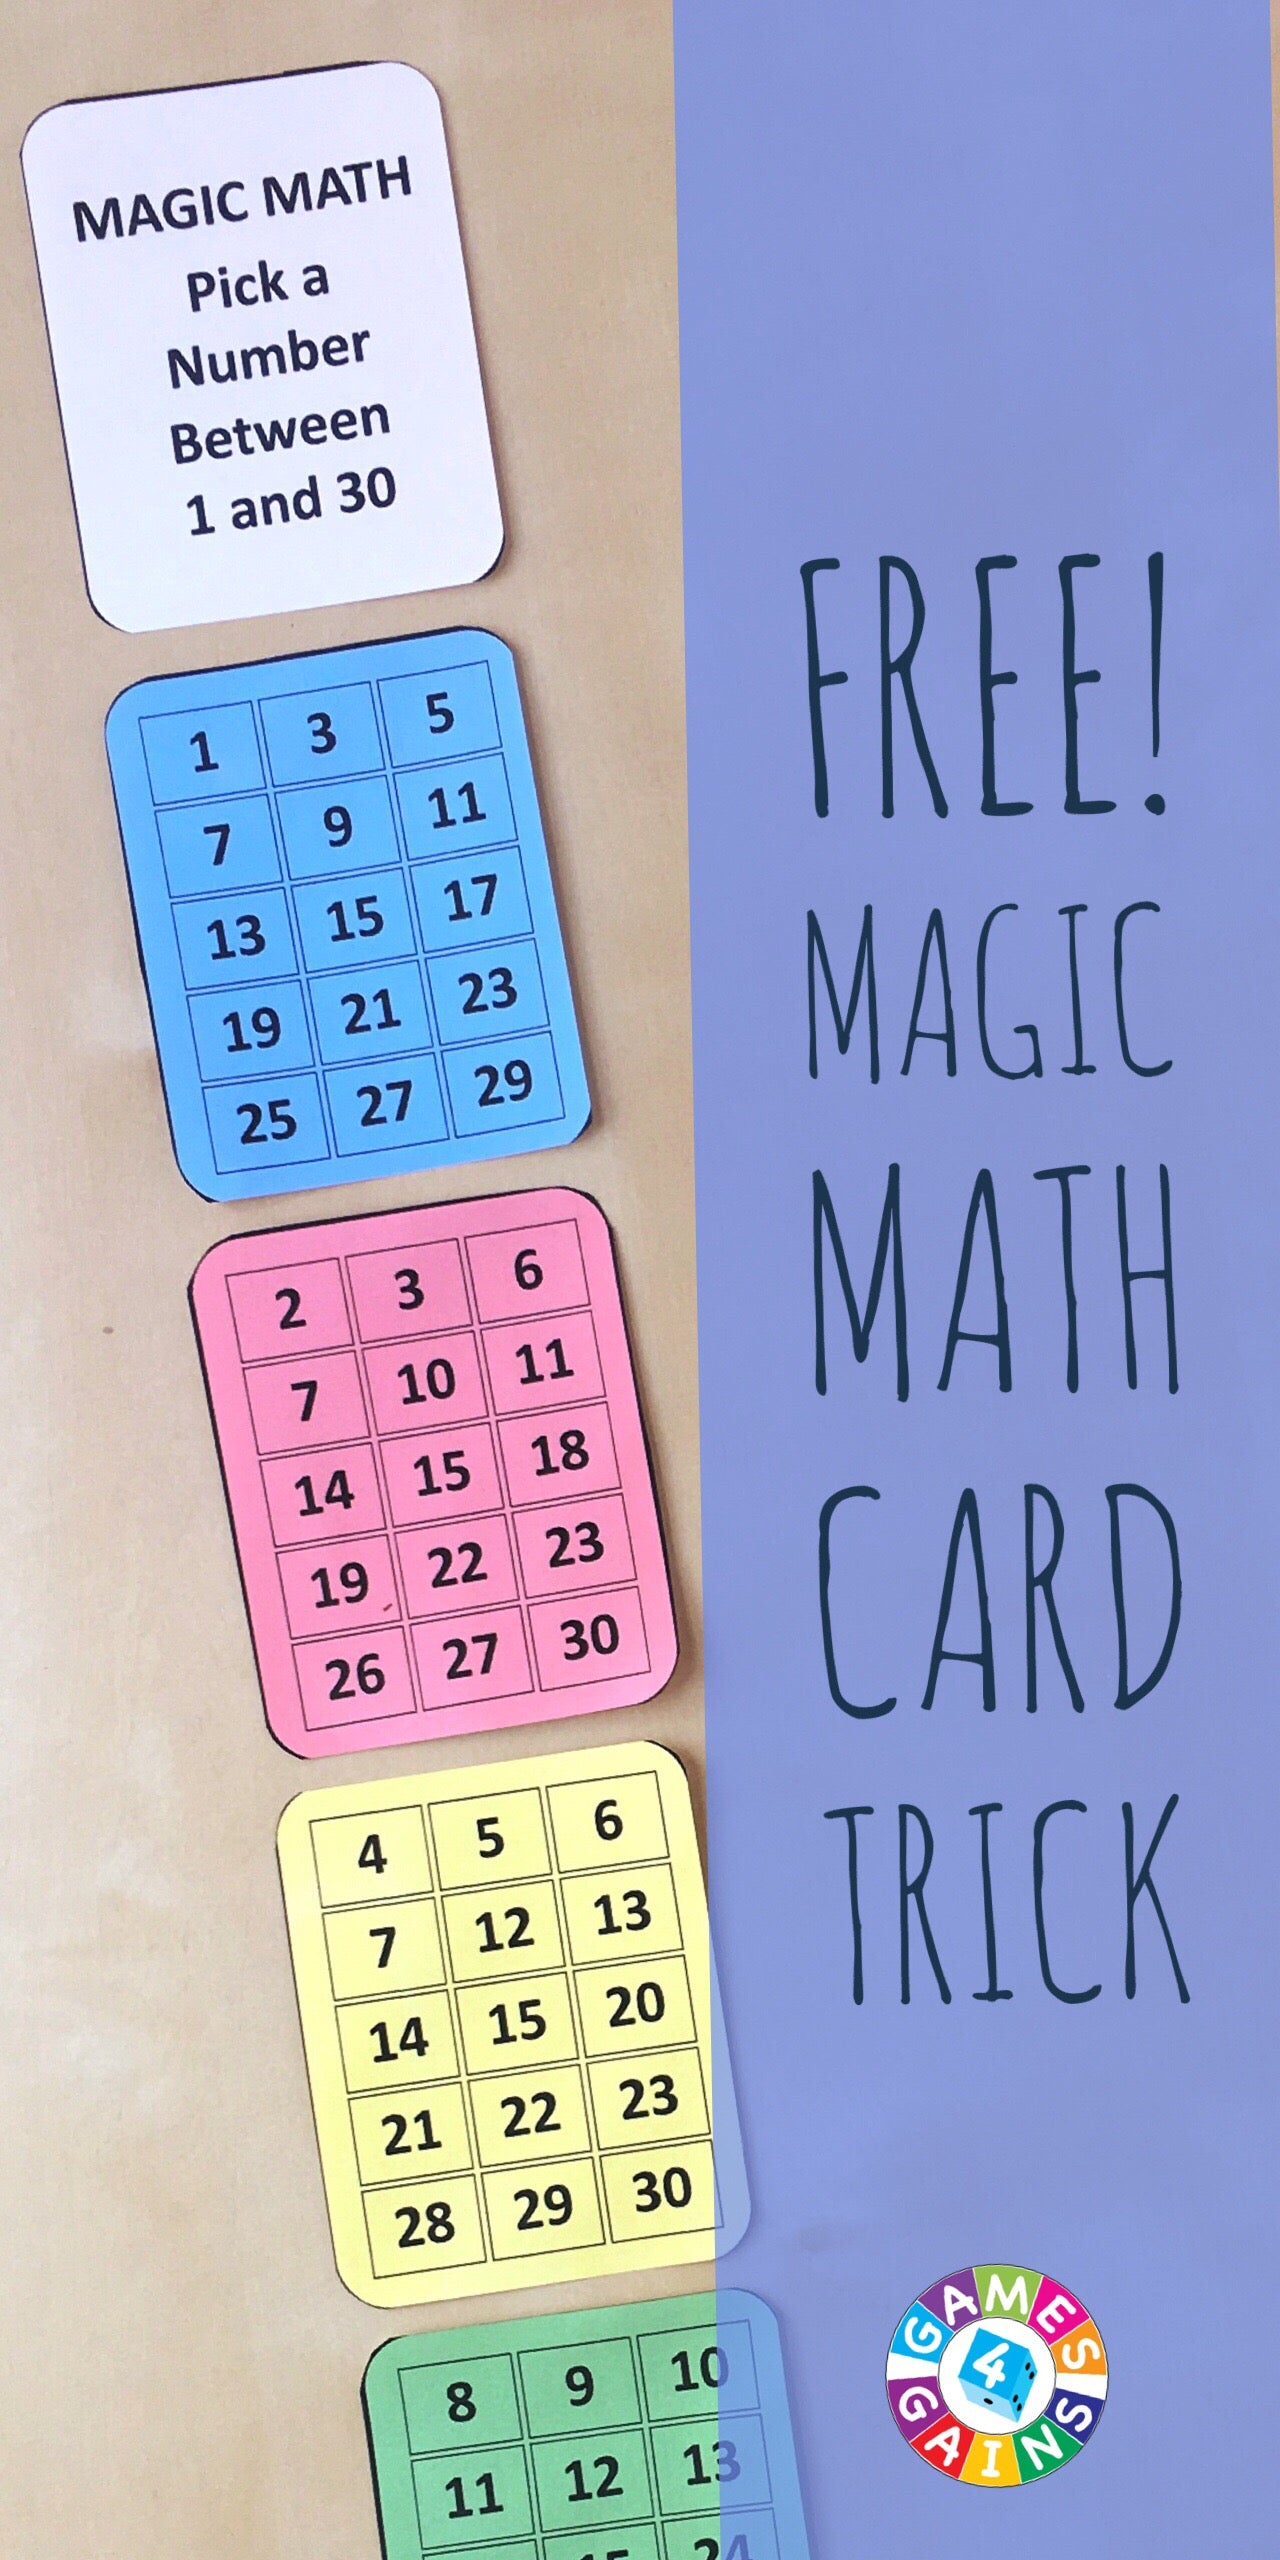 Amaze Your Students With This Math Magic Trick! – Games 4 Gains